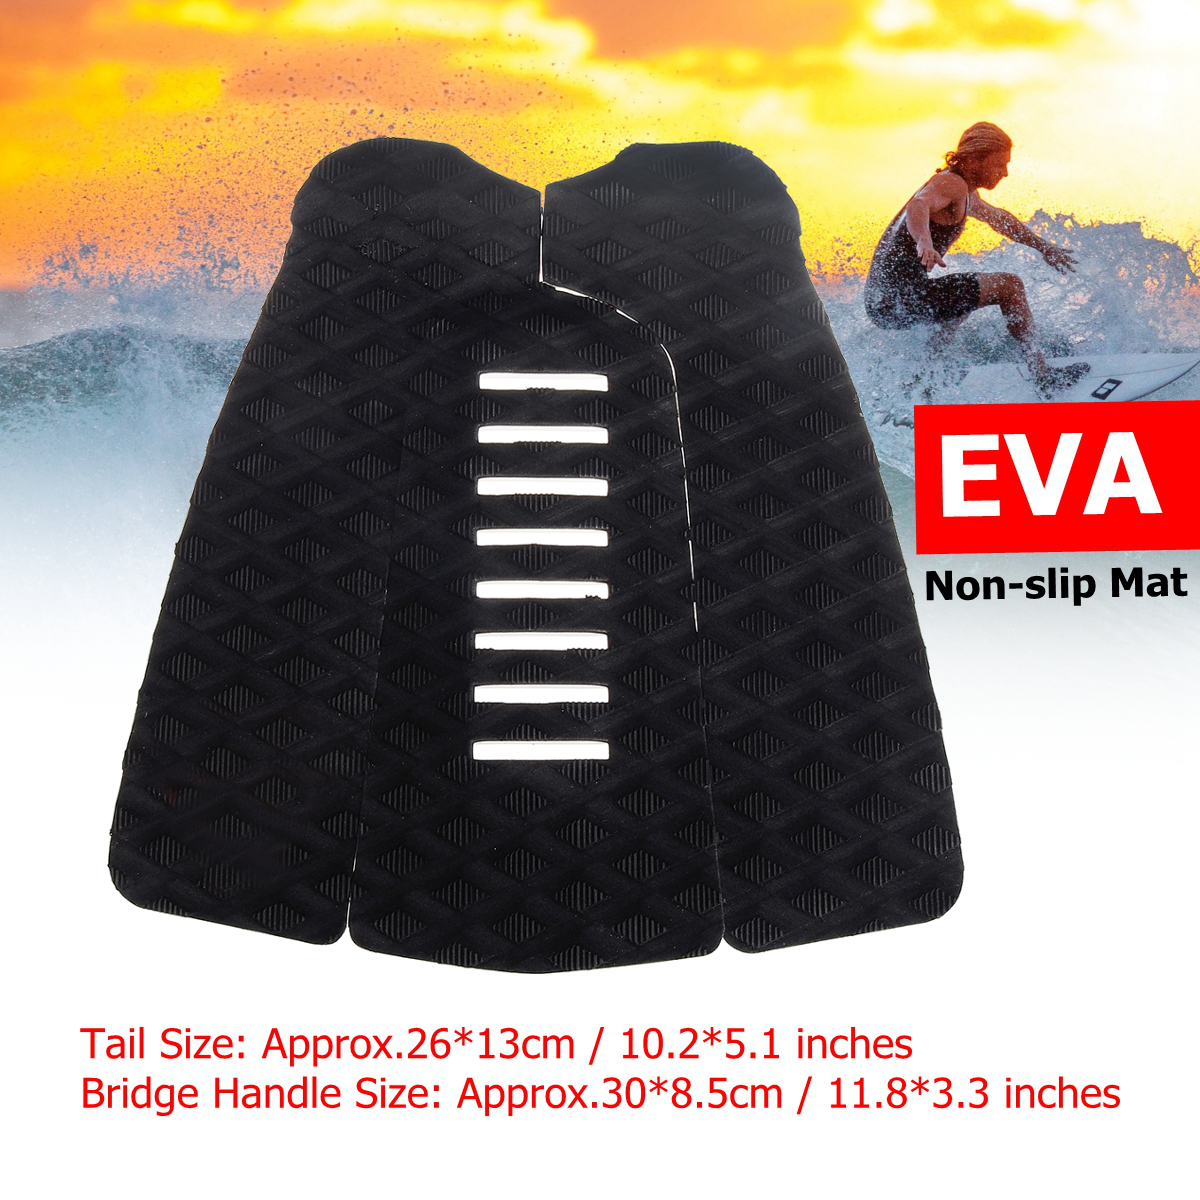 3Pcs/Set EVA Surfing Pads Anti-Slip Traction Surfboard Pad Outdoor Water Sports Surfing Deck Grip Mat Anti-shock Surfboard Pads(China)